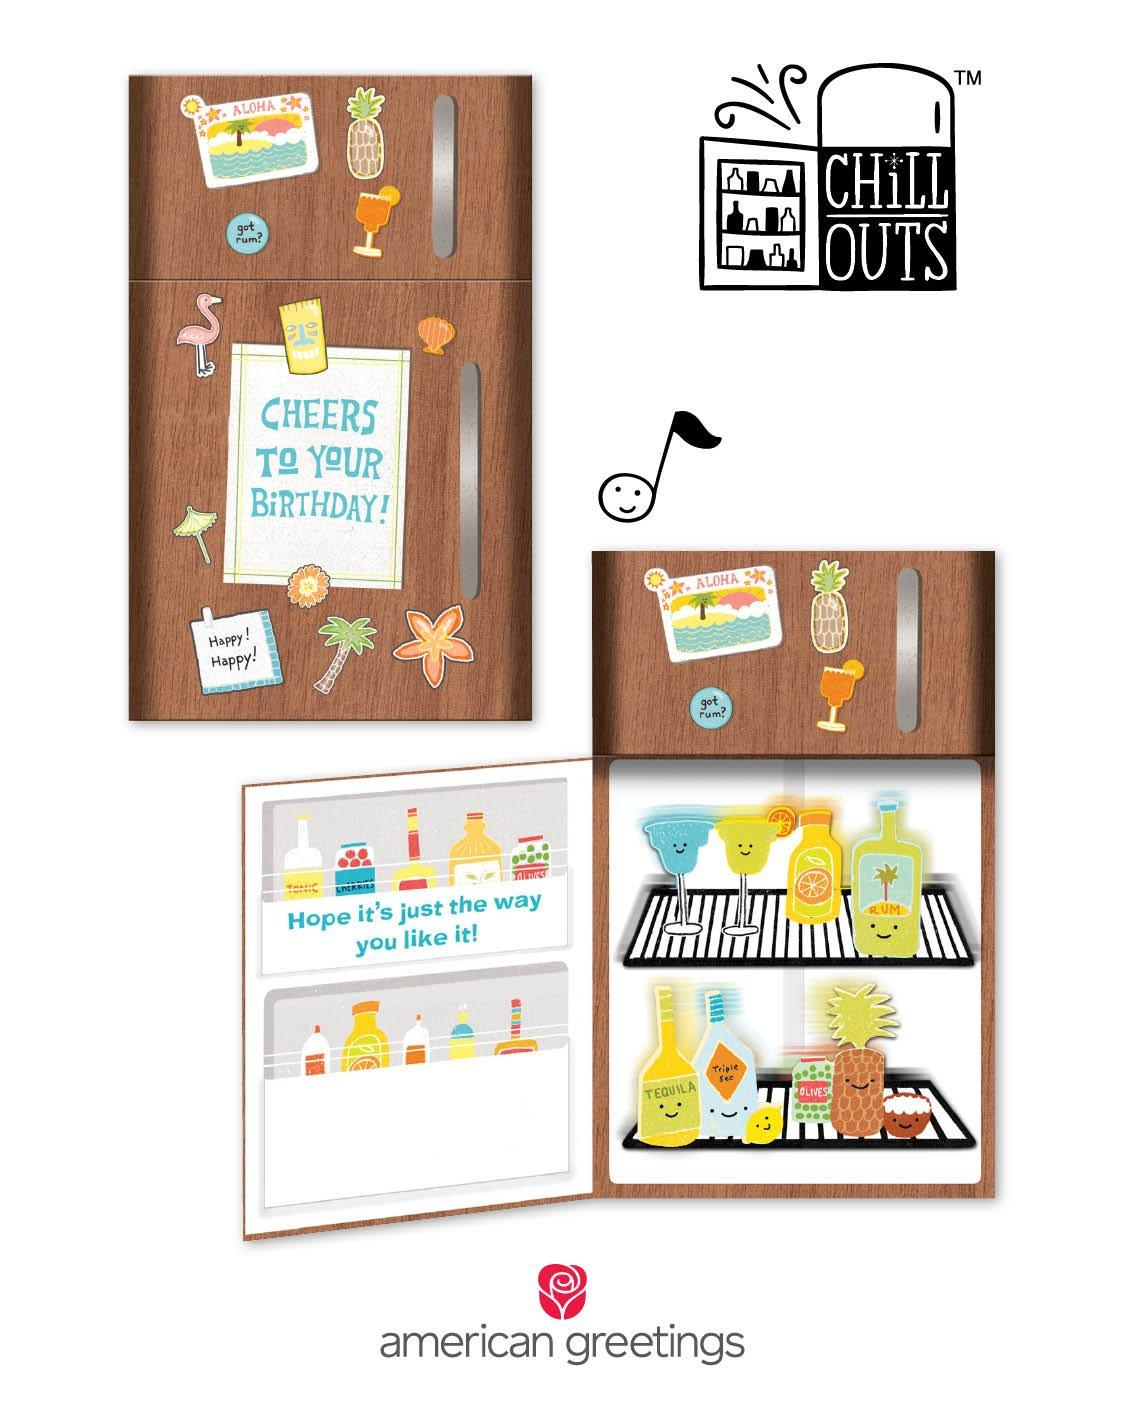 Make birthdays extra cool with new chill outstm cards from make birthdays extra cool with new chill outstm cards from american greetings kristyandbryce Image collections